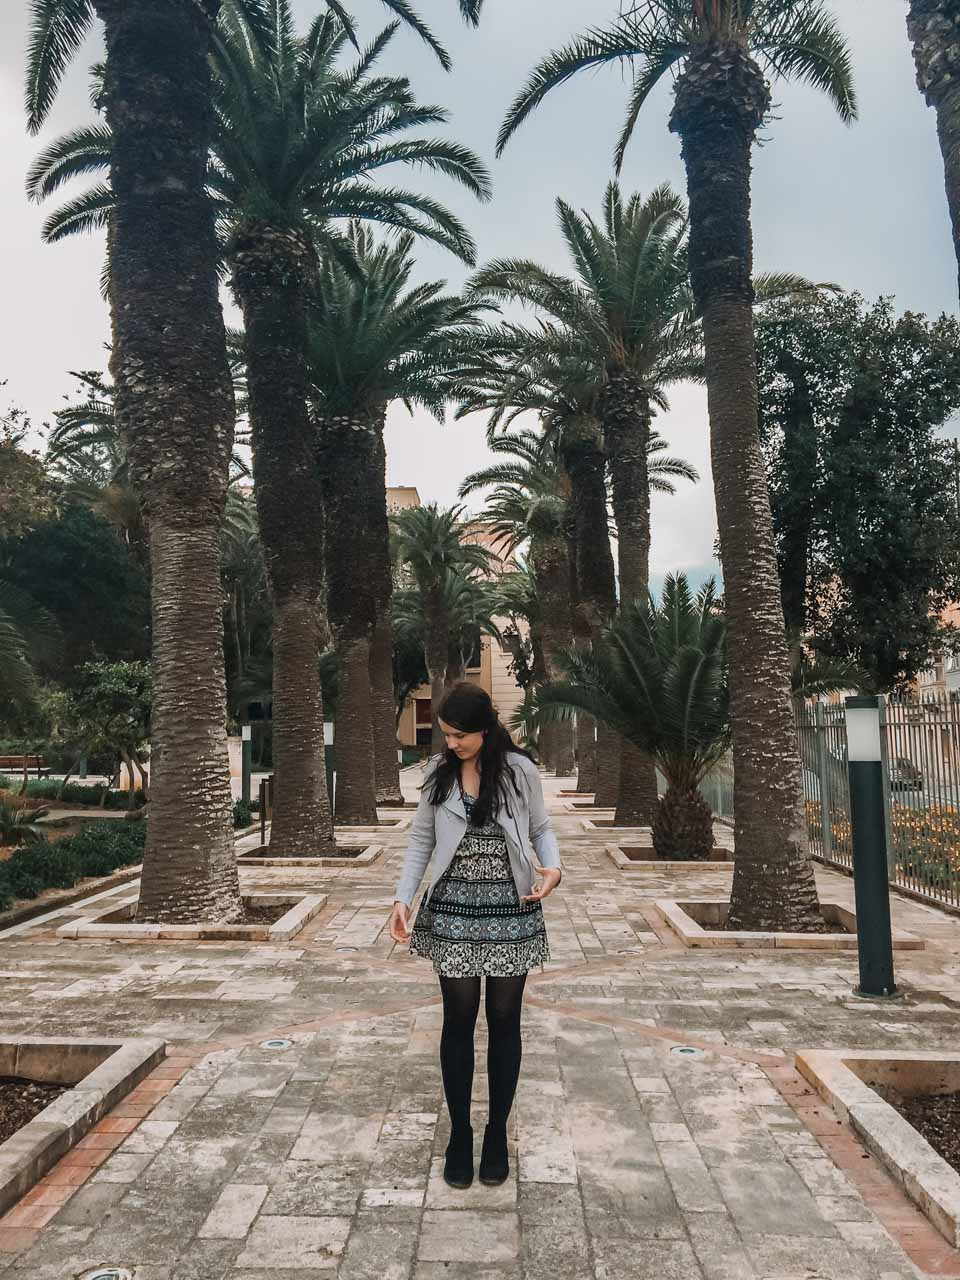 A girl in a patterned dress standing in the Villa Rundle Gardens in Gozo